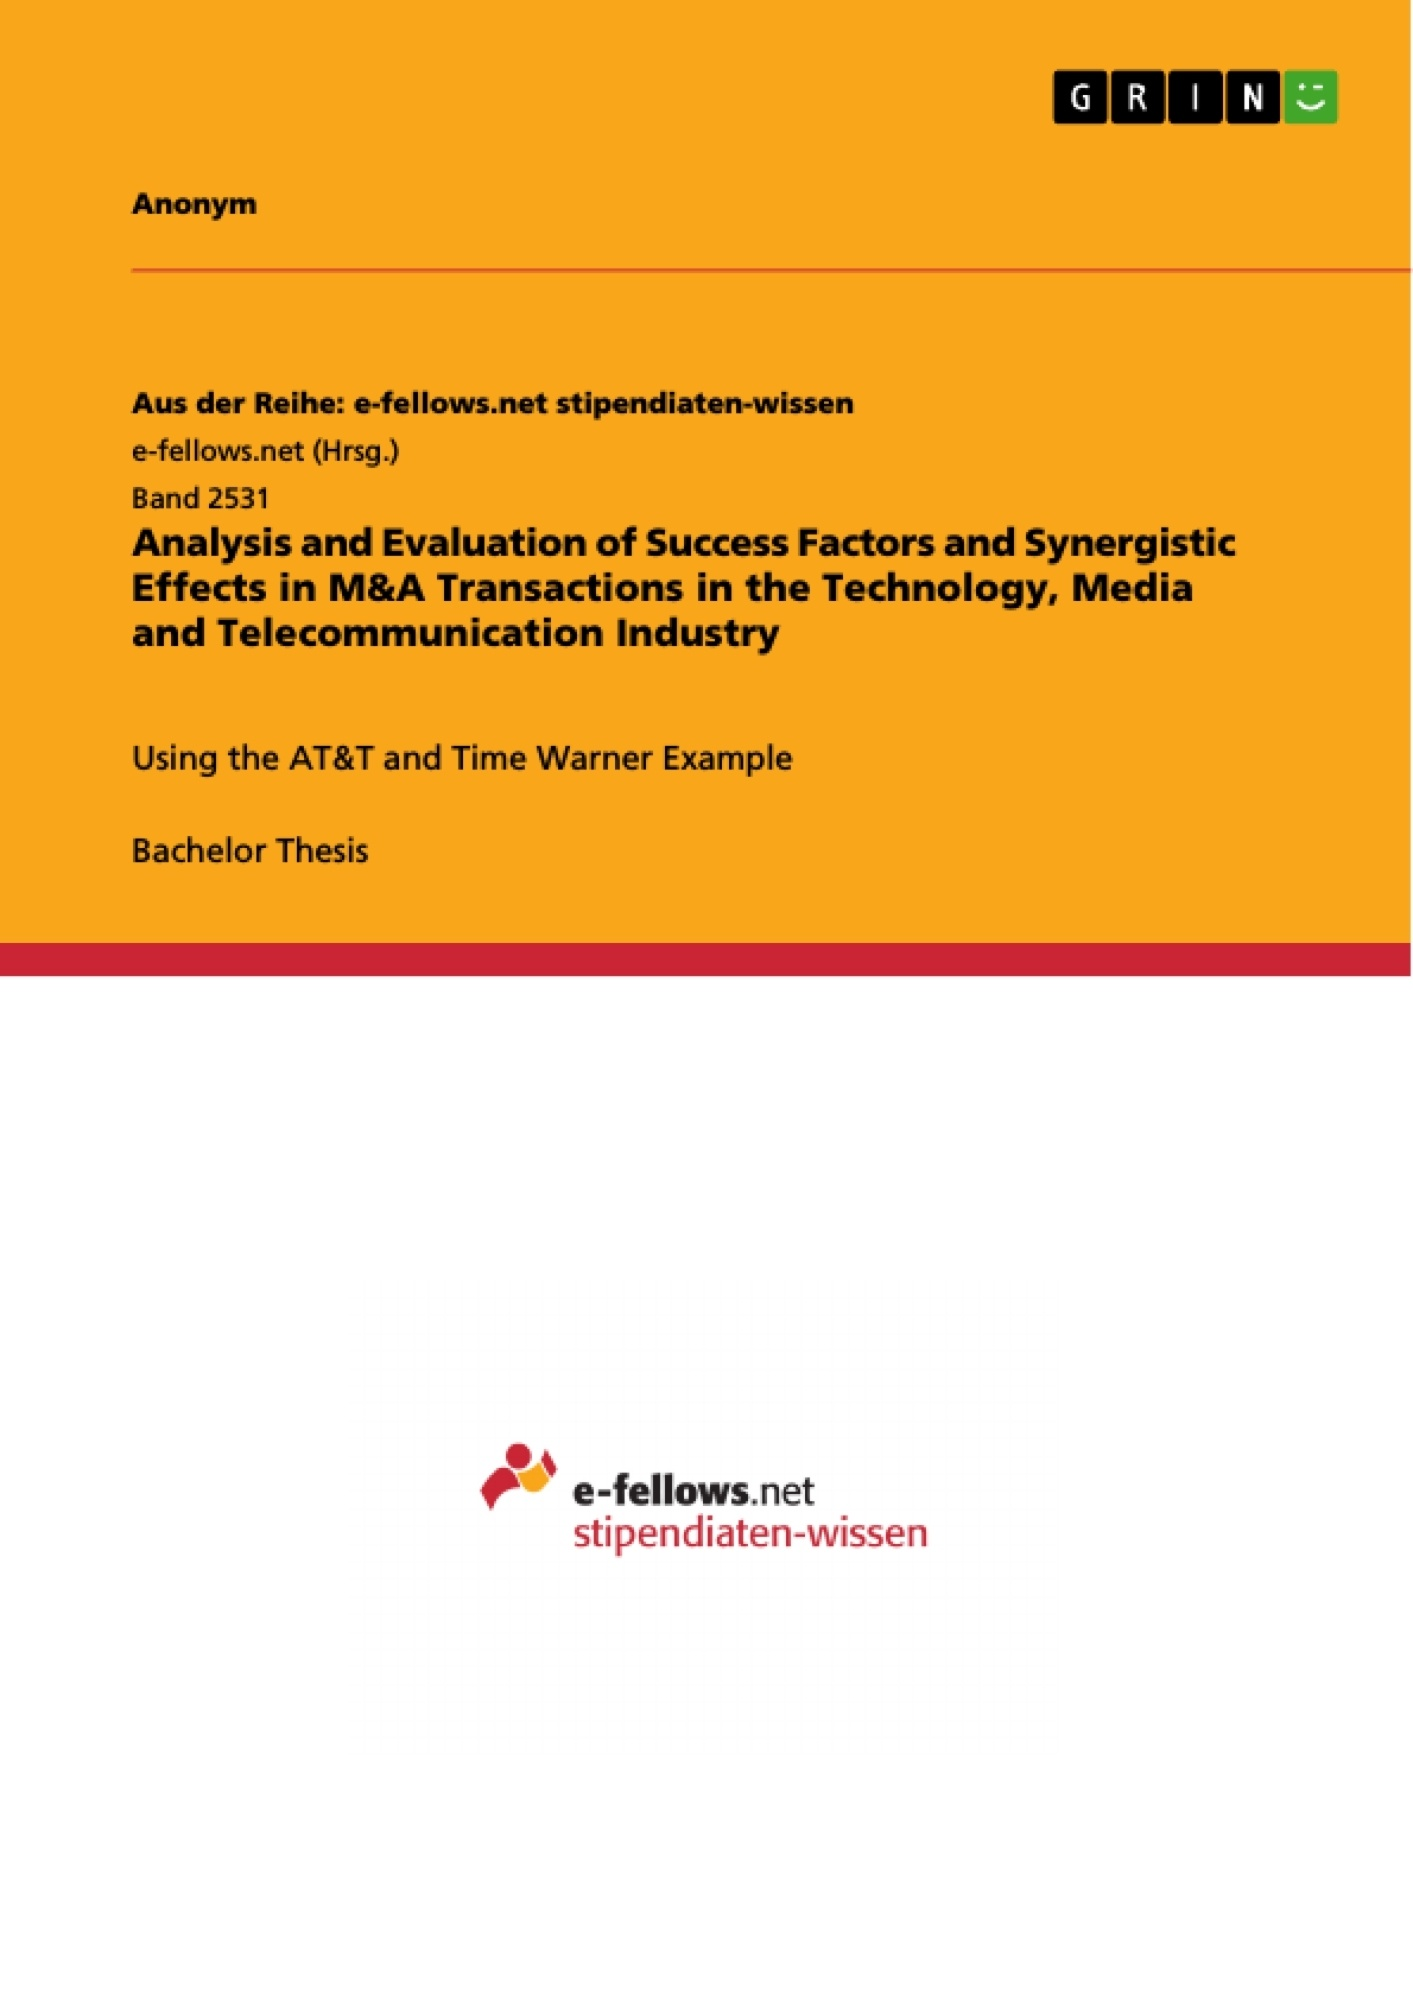 Title: Analysis and Evaluation of Success Factors and Synergistic Effects in M&A Transactions in the Technology, Media and Telecommunication Industry